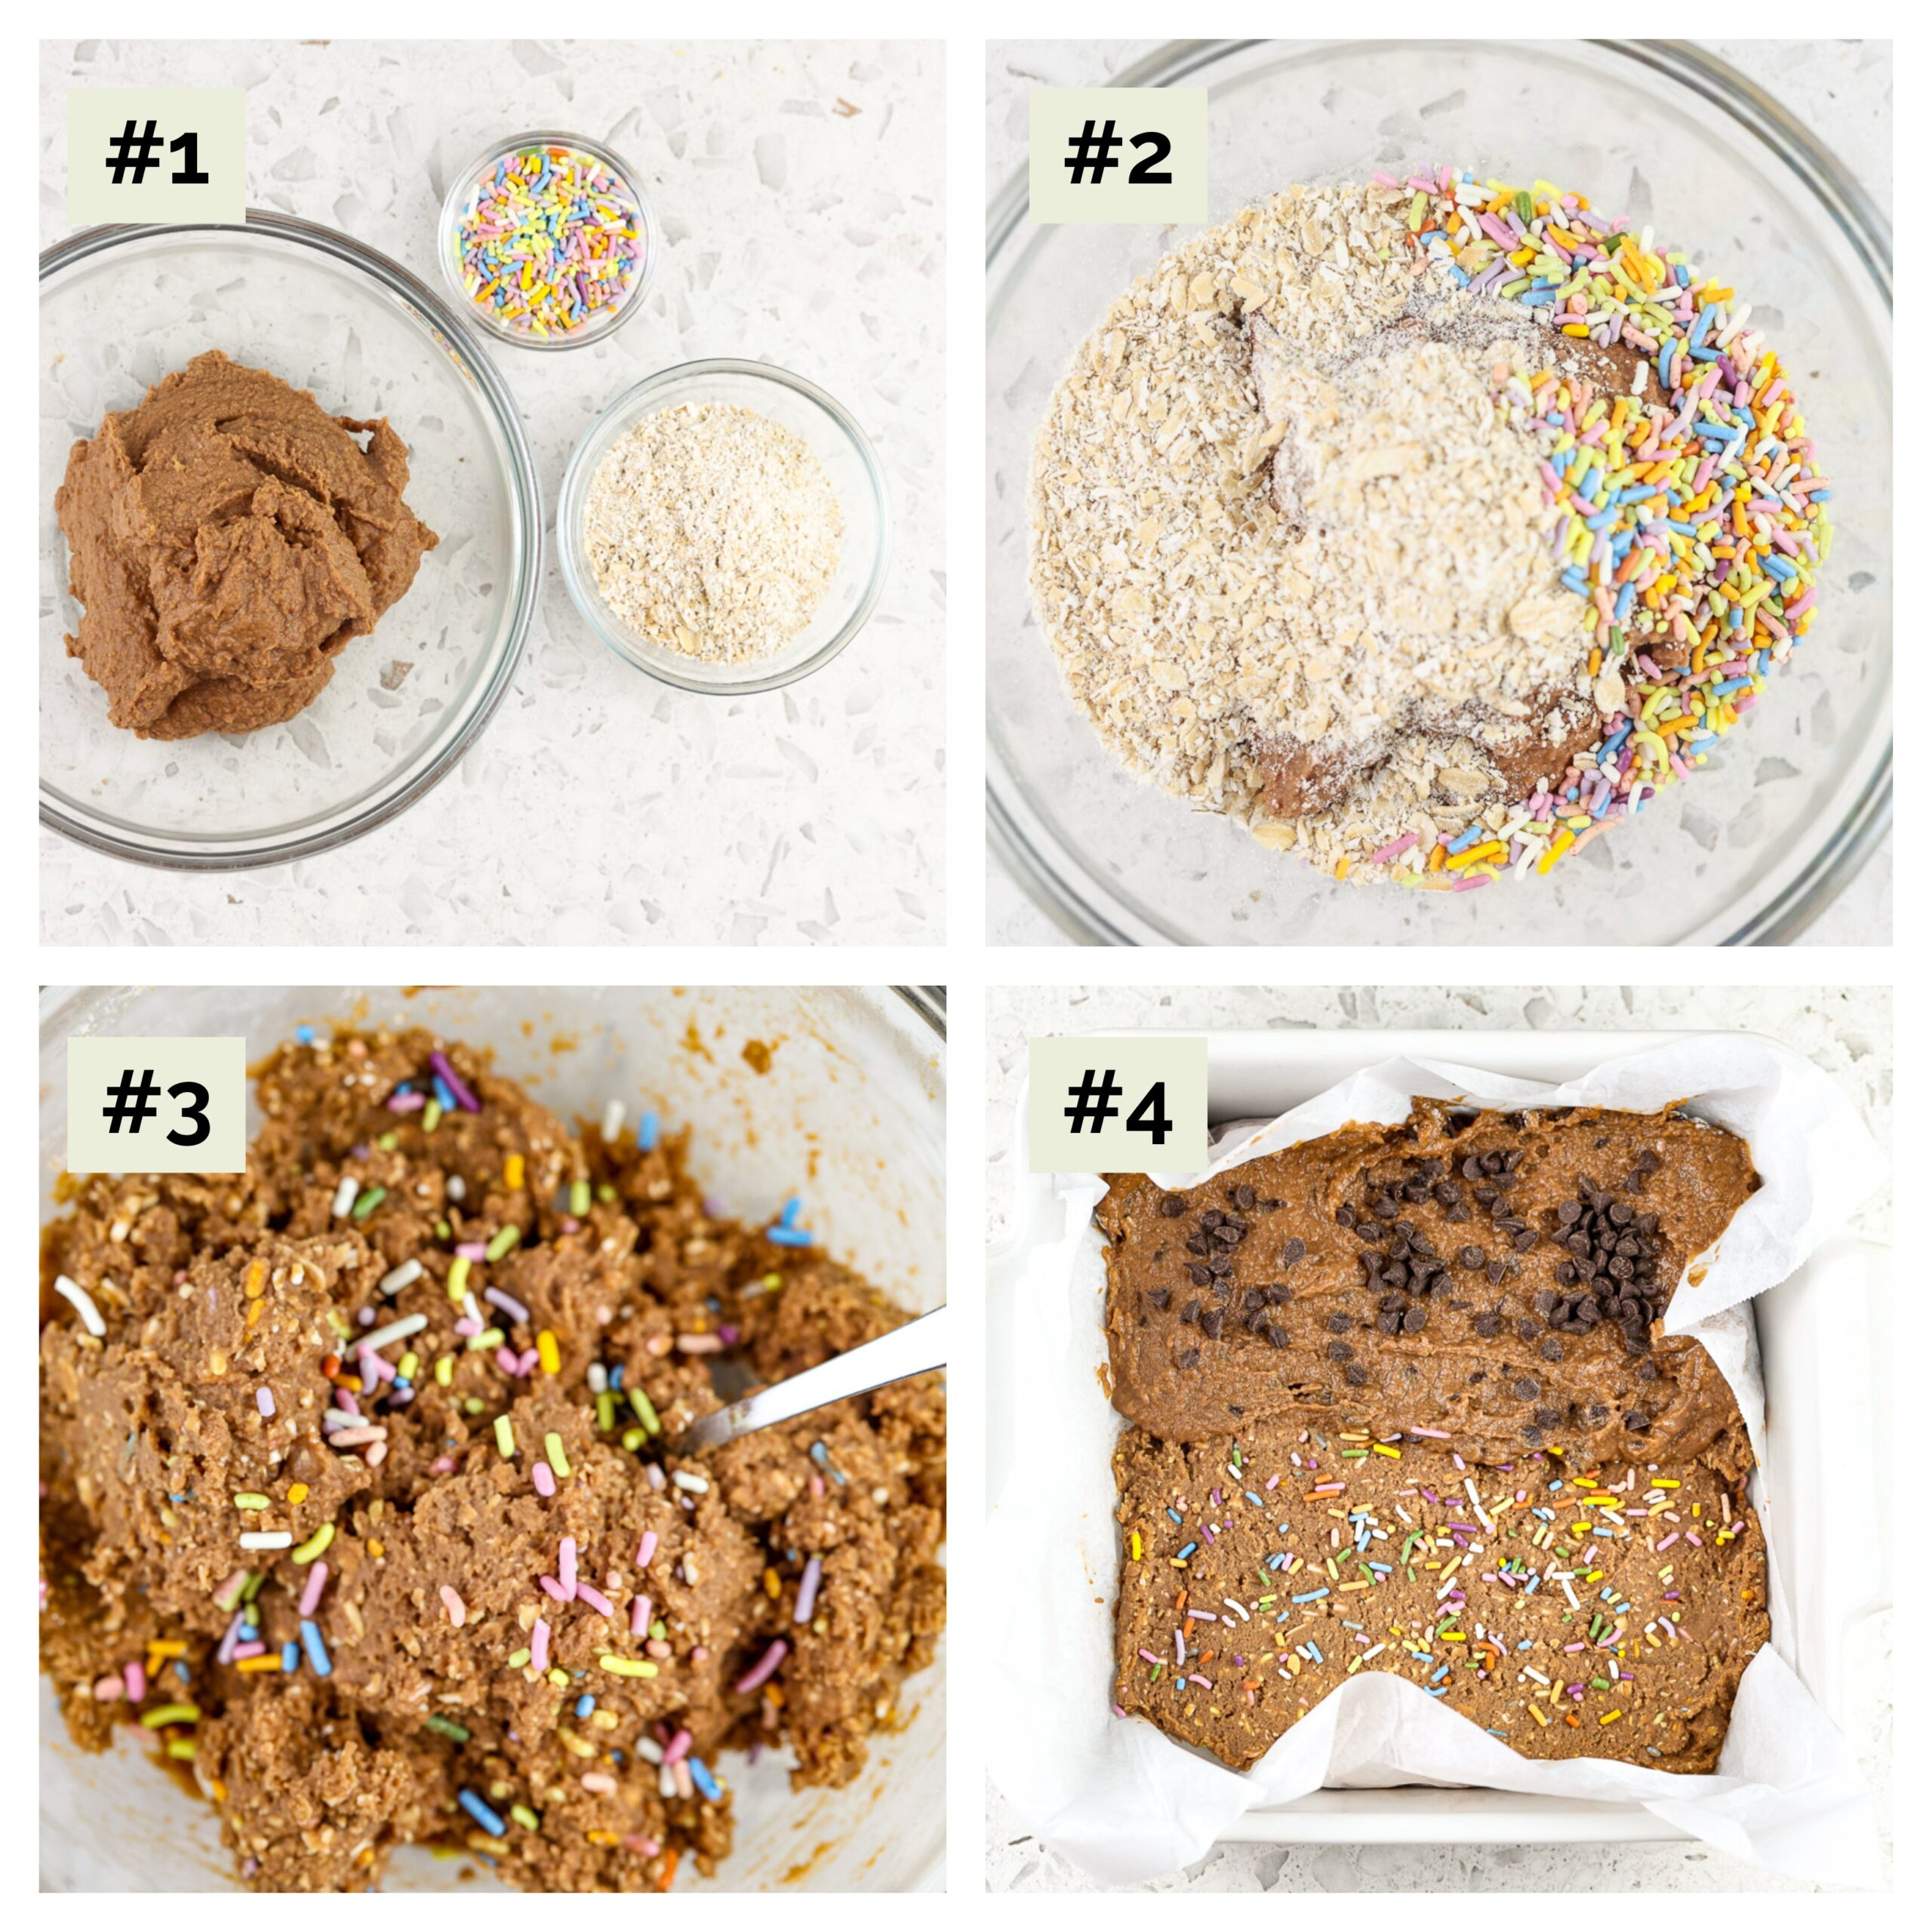 Four image collage with process shots. First image is three glass bowls filled with cocoa powder, sprinkles and oat flour. The second and third are the ingredients mixed together, and the fourth is the dough pushed down into a white baking dish.